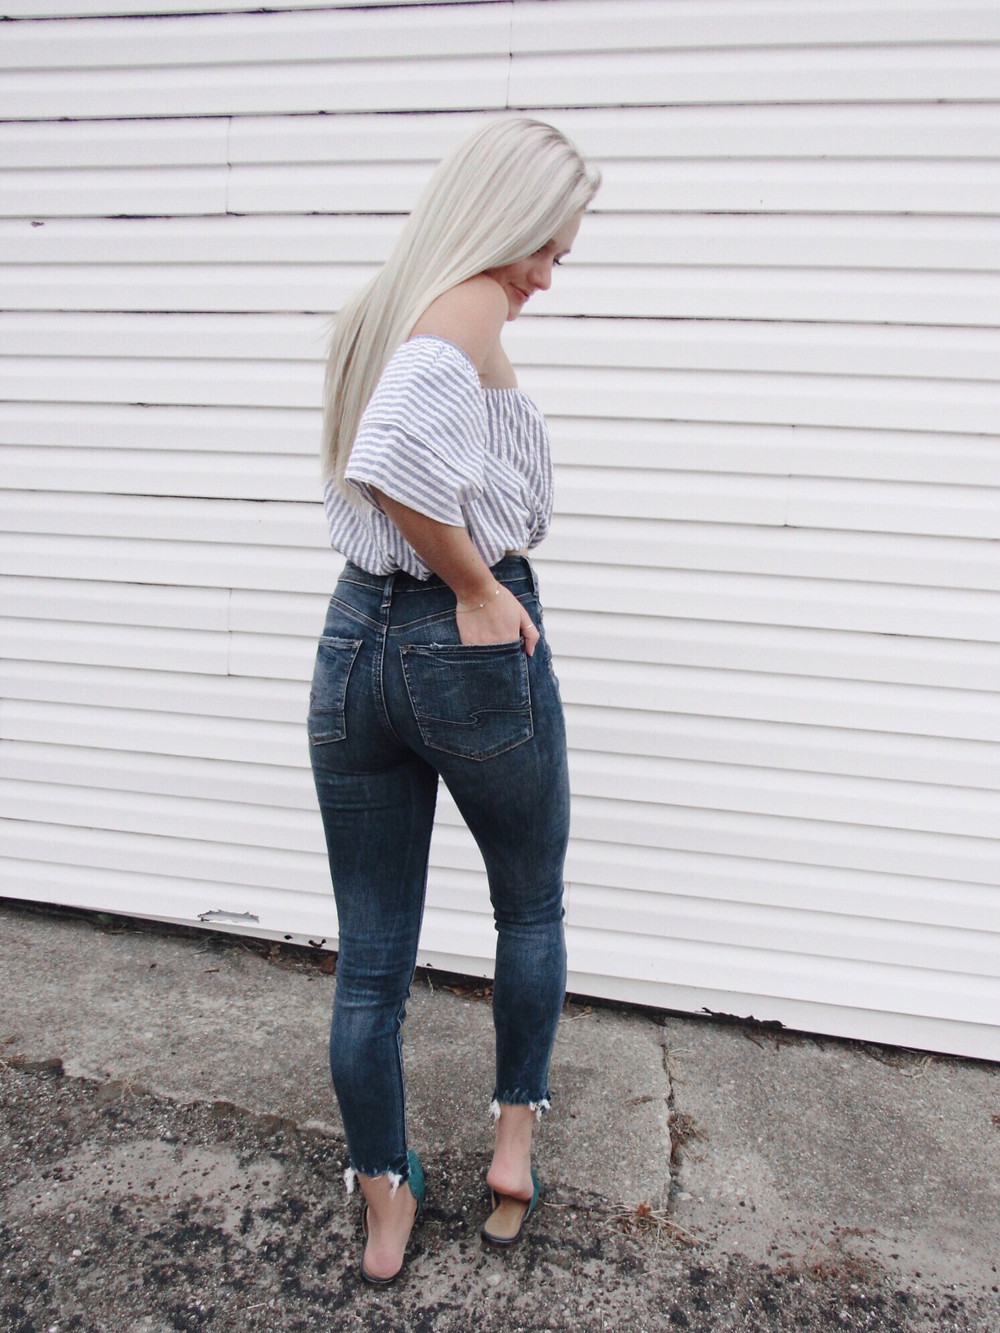 Silver Jeans Co. Caitlin Eliza Style